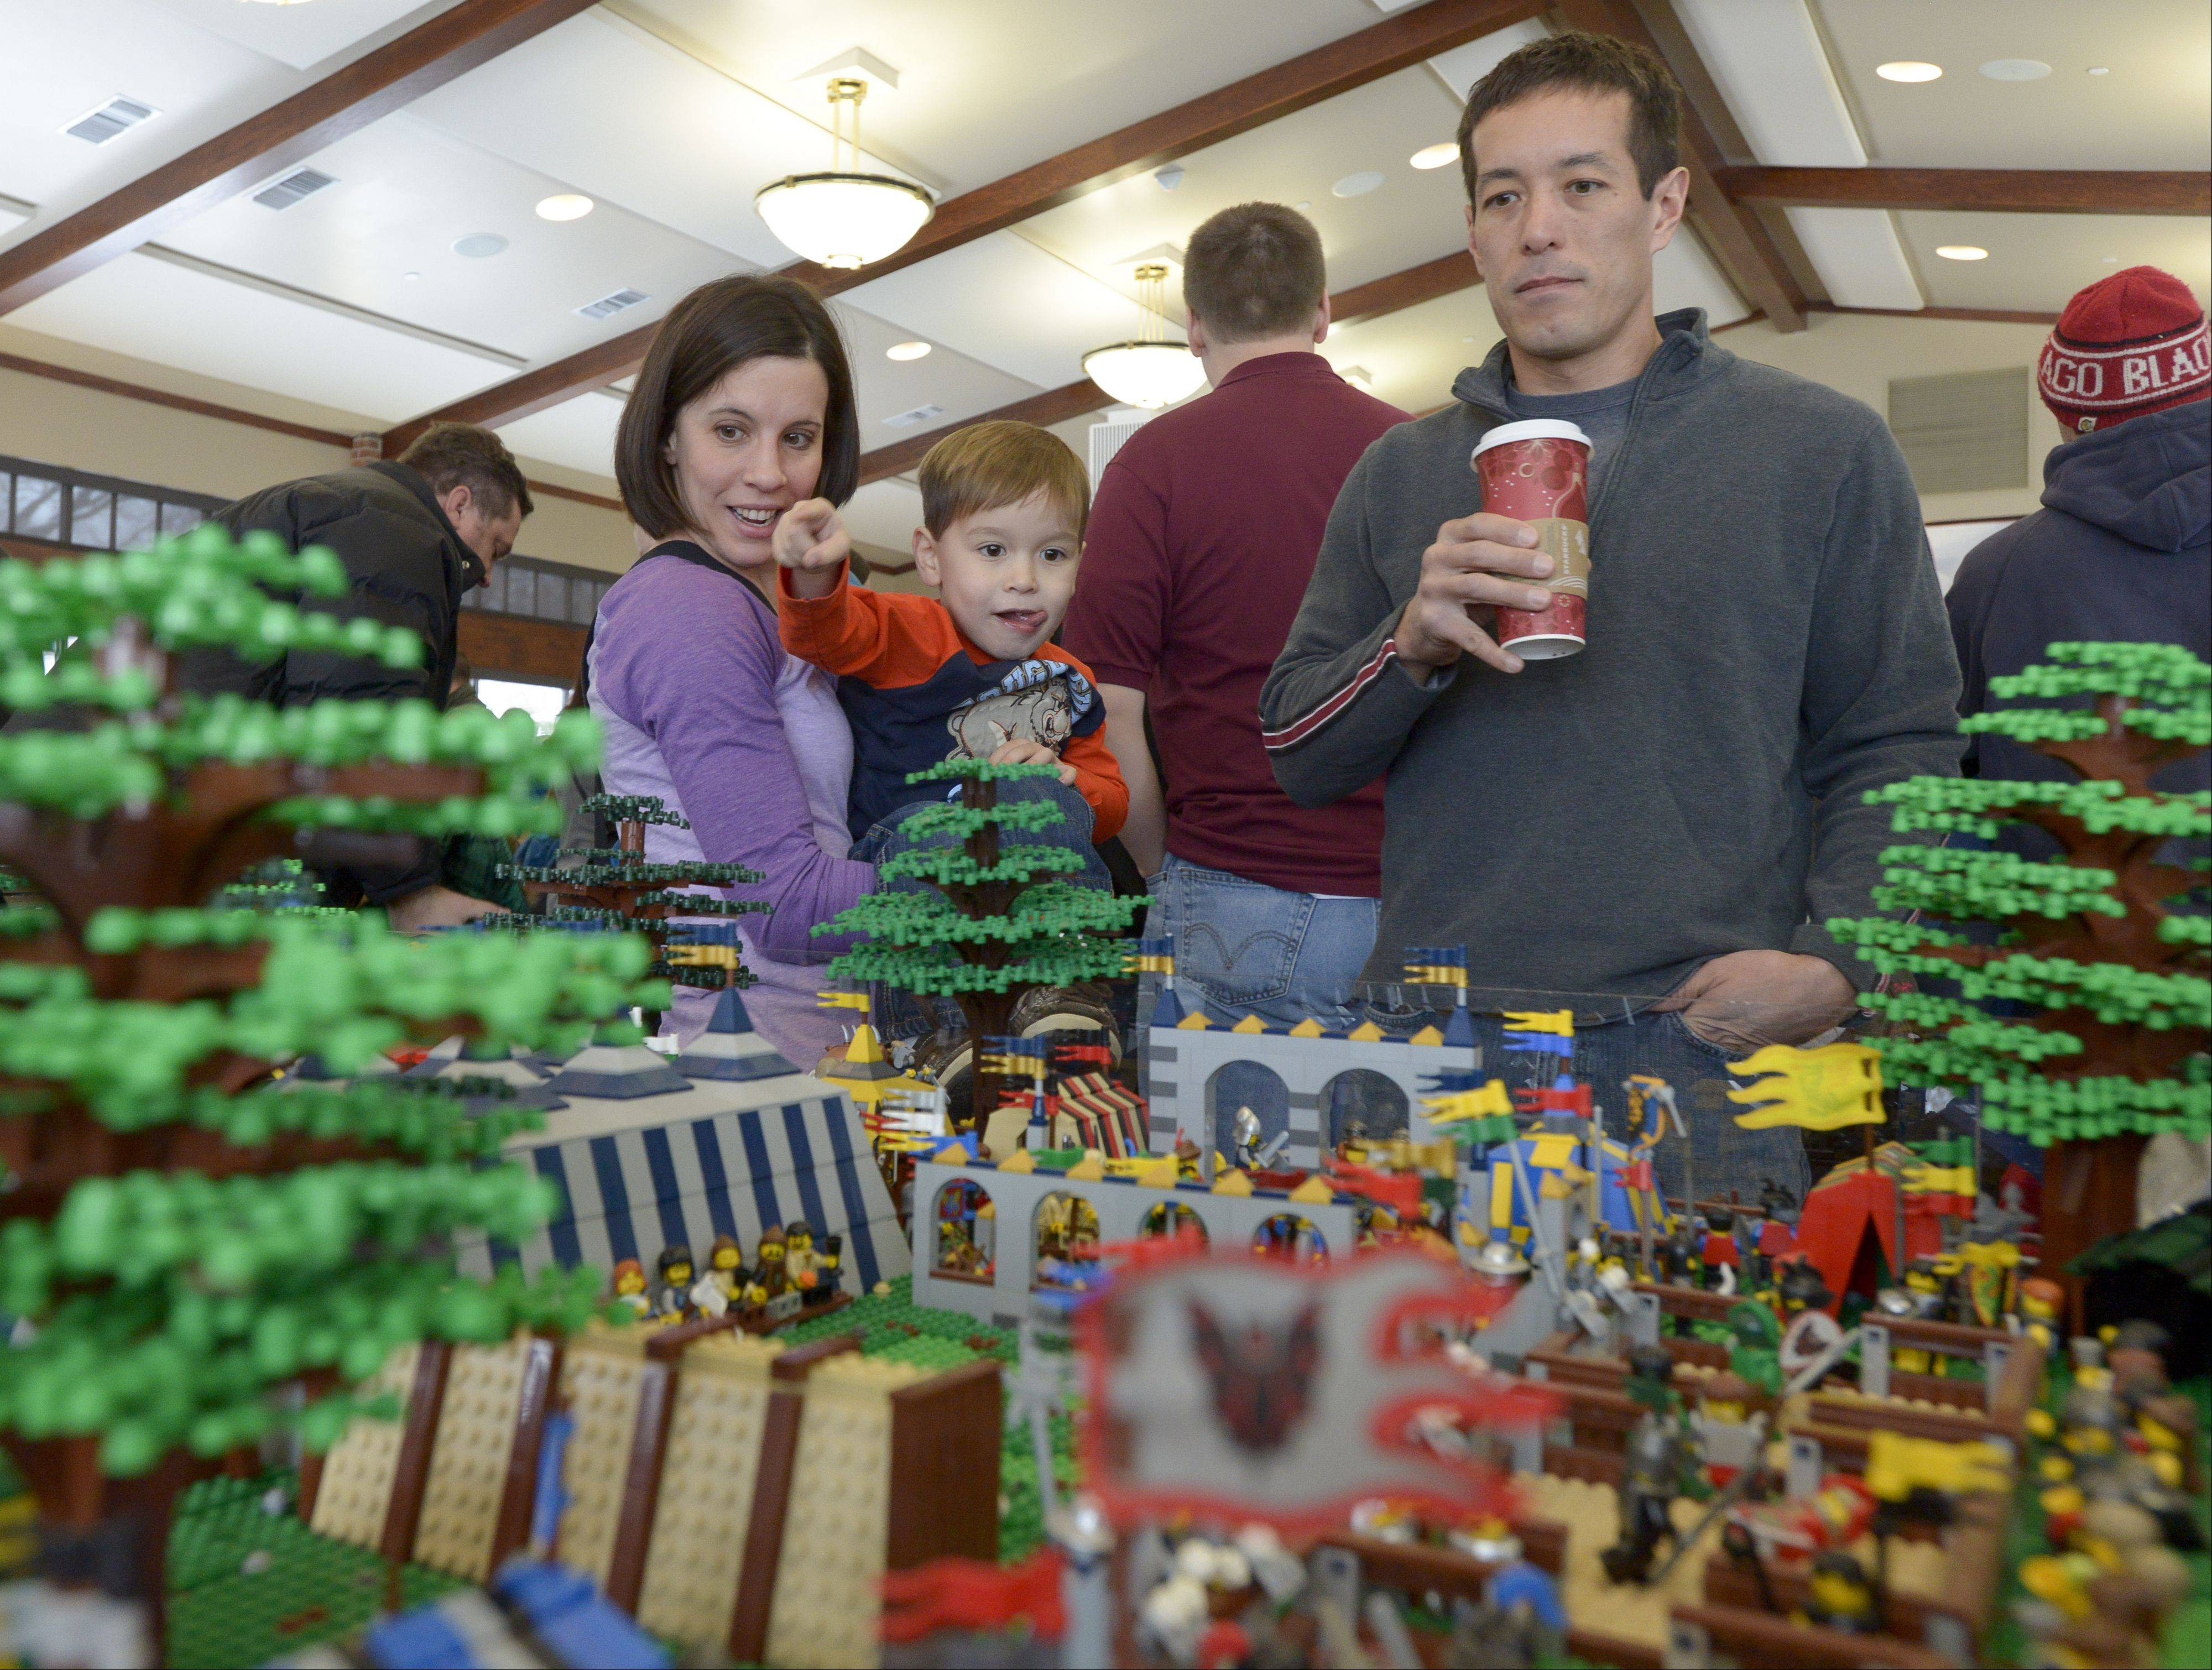 The Waterstraat family of Naperville, Liz, Max, 3 and Chris, check out some of the displays setup by the Northern Illinois Lego Train Club during the 12th annual Lego Train Show and Party on Sunday at Wheaton's Cantigny Park.